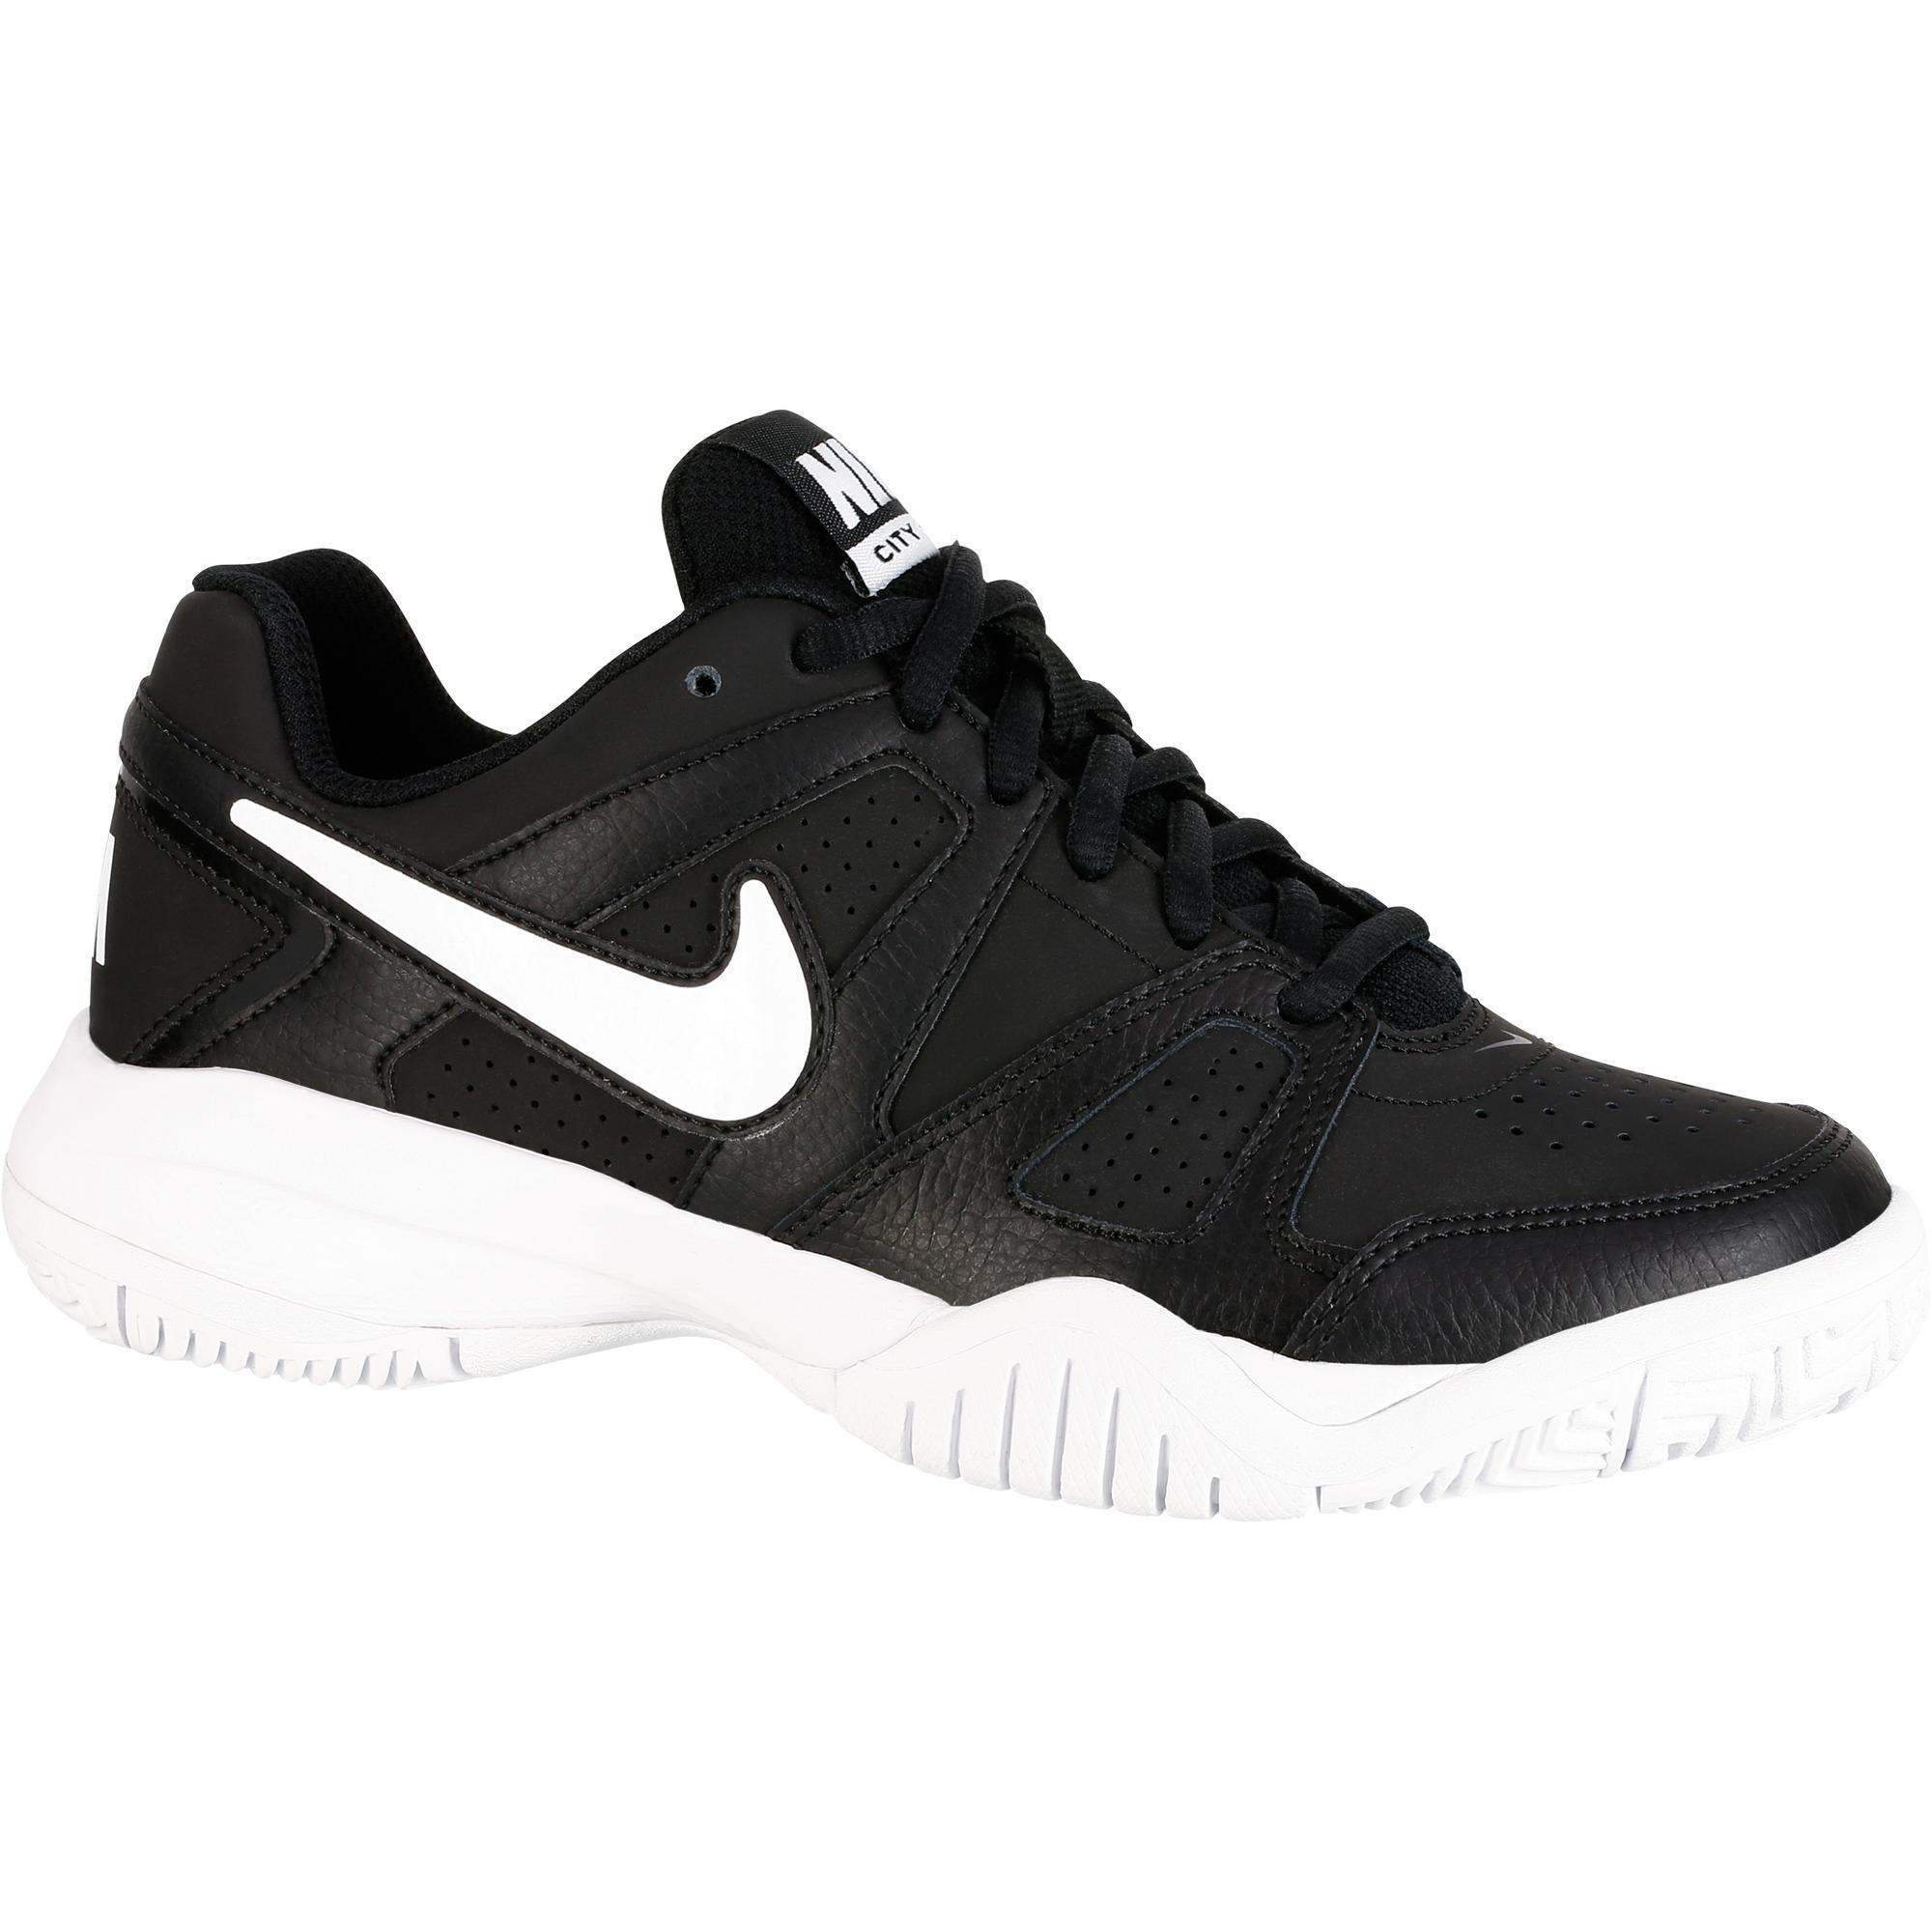 low priced be170 62f4b Nike artikelen online ← Decathlon.nl